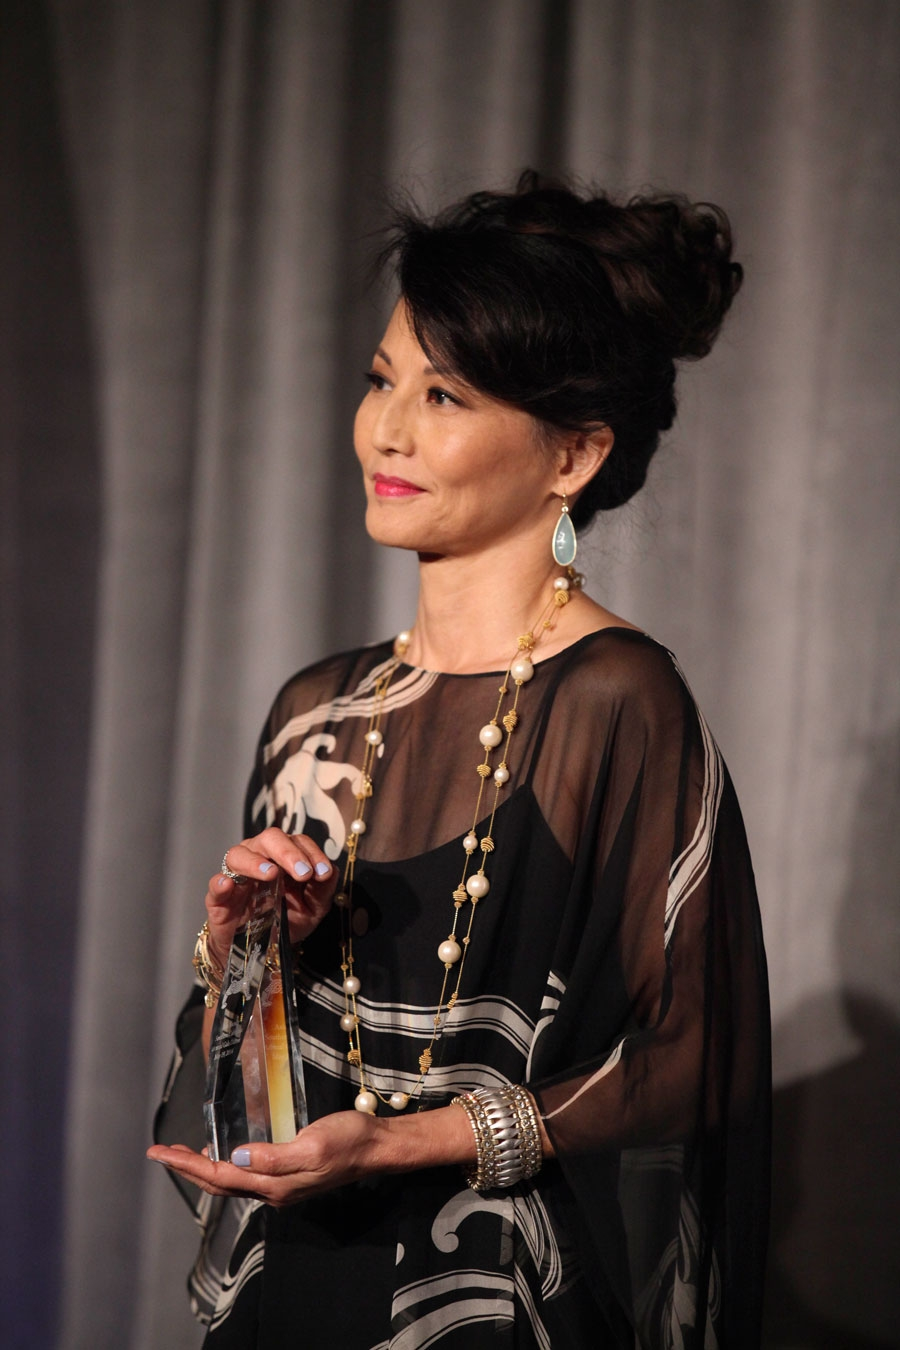 Emcee Tamlyn Tomita presents an award during the Asia Society Southern California 2014 Annual Gala held at the Millennium Biltmore Hotel on Monday, May 19, 2014, in Los Angeles, Calif. (Photo by Ryan Miller/Capture Imaging)